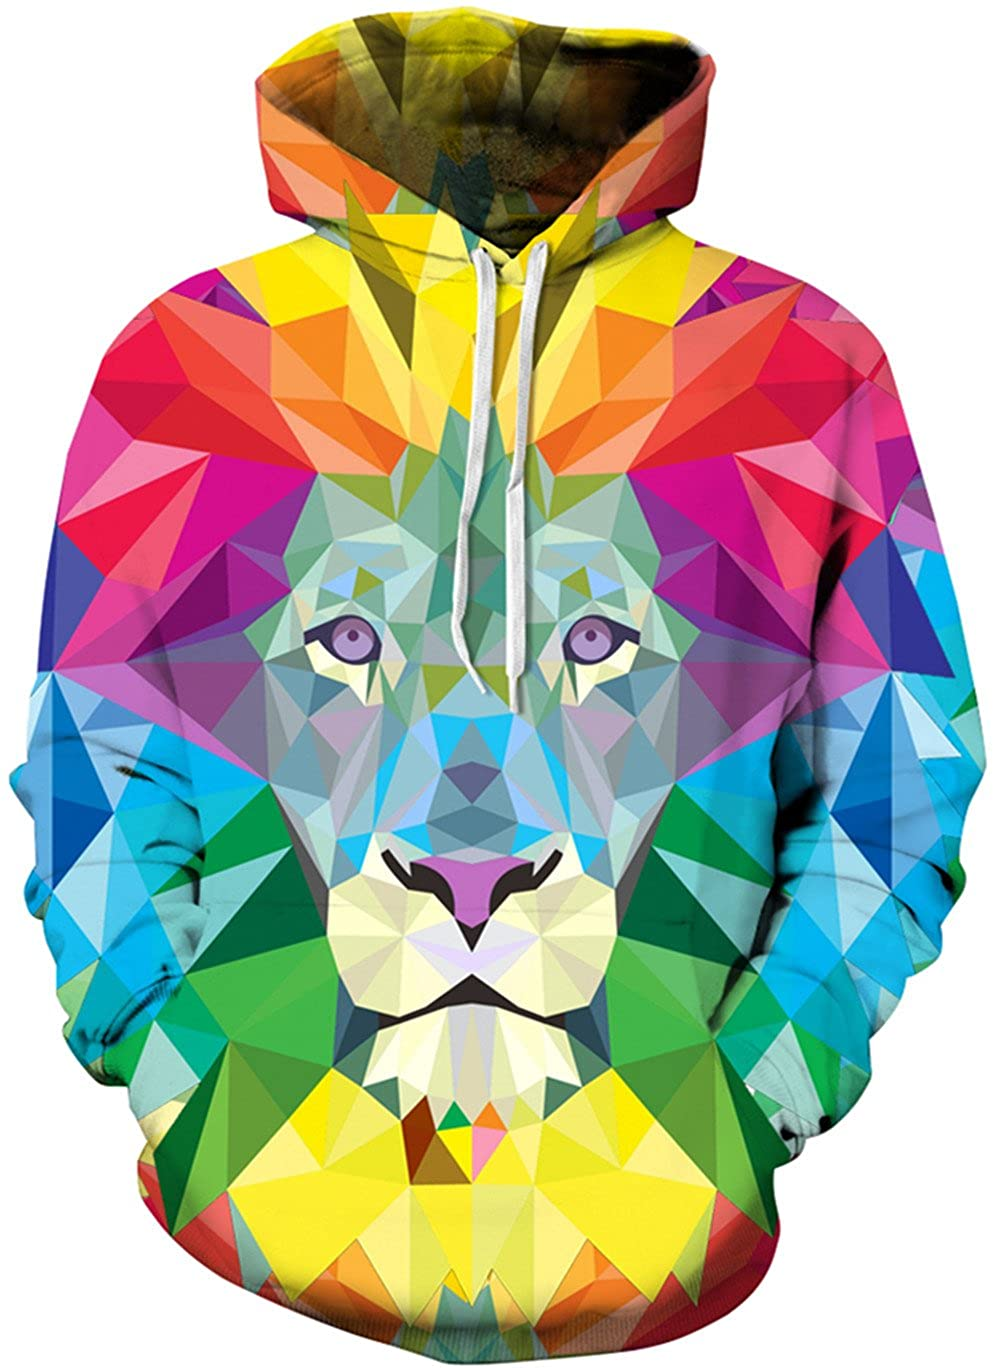 Imbry Women's 3D Printed Hoodies Pullover Hooded Sweatshirts CMSTCQYDM